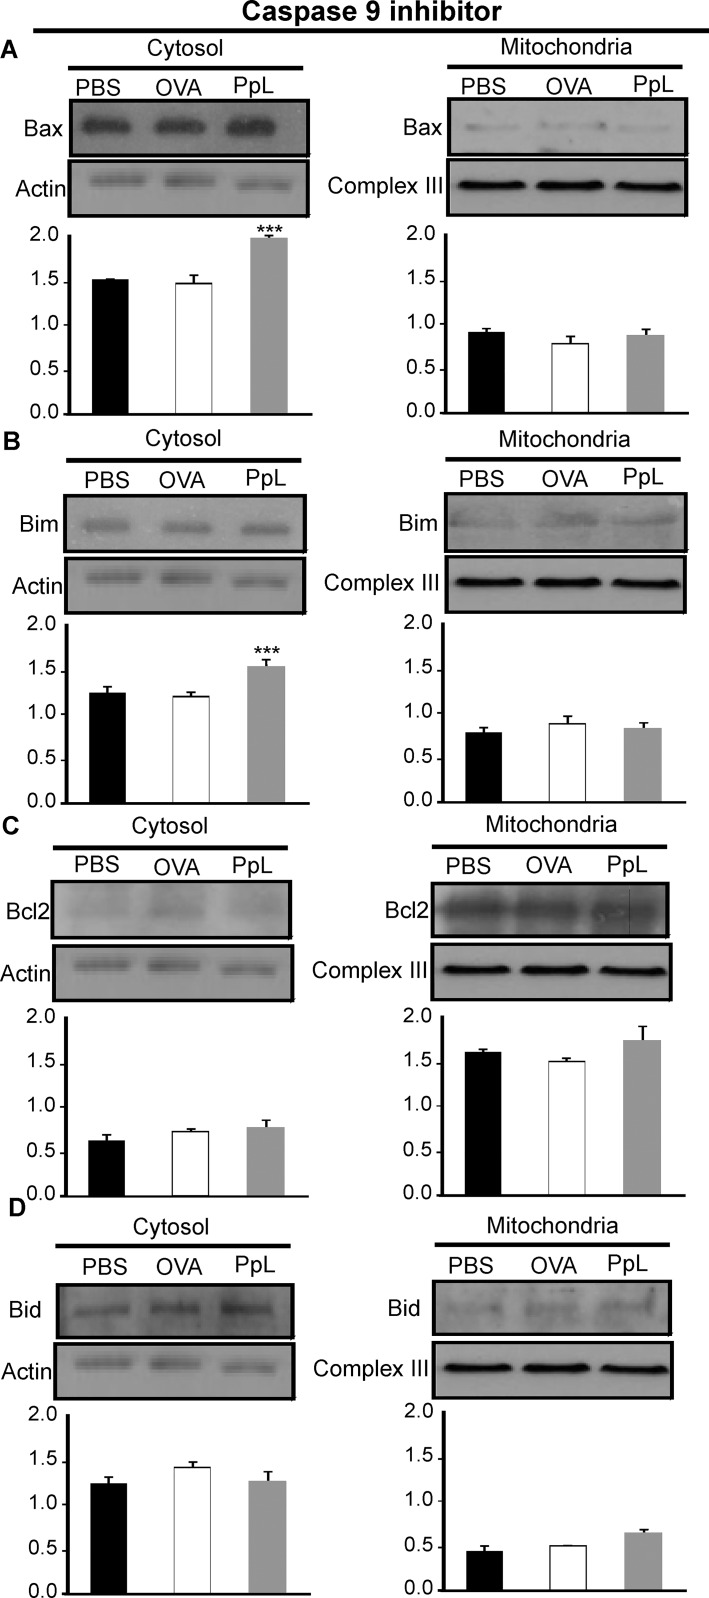 Effect of caspase-9 inhibitor on the PpL-induced translocation of Bax, Bim and Bcl-2 between the mitochondrial and cytosol compartments. Daudi cells pretreated with caspase-9 inhibitor were incubated with PpL (100 μg/ml), OVA (100 μg/ml) or PBS for 8 hs. Cell lysates containing cytosol and mitochondria fractions were prepared. Expression of Bax, Bim, Bcl-2 and Bid was analyzed by Western blotting. Membranes were sequentially blotted with anti-Bax (A) , anti-Bim (B), anti-Bcl-2 (C) , anti-Bid (D) , anti-actin or anti-III complex antibodies. Images of representative Western blots are shown. The optical density of Bax, Bim, Bcl-2 and Bid bands was quantified and normalized to actin or III complex. The relative levels are shown. Data are presented as the mean ± SEM of three independent experiments, (*** p